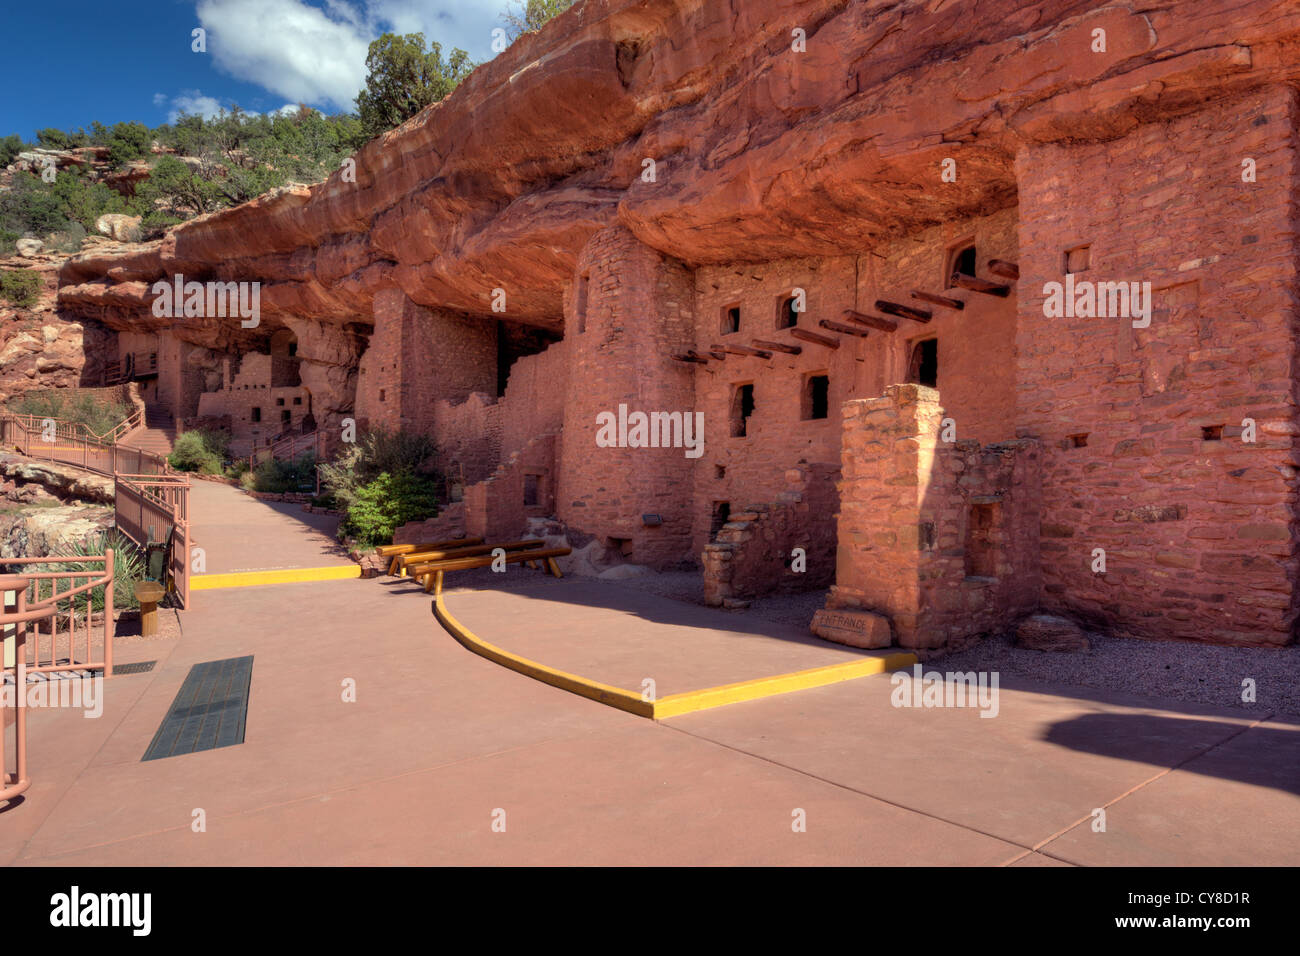 Manitou Cliff Dwellings, a tourist attraction near Manitou Springs, Colorado. - Stock Image